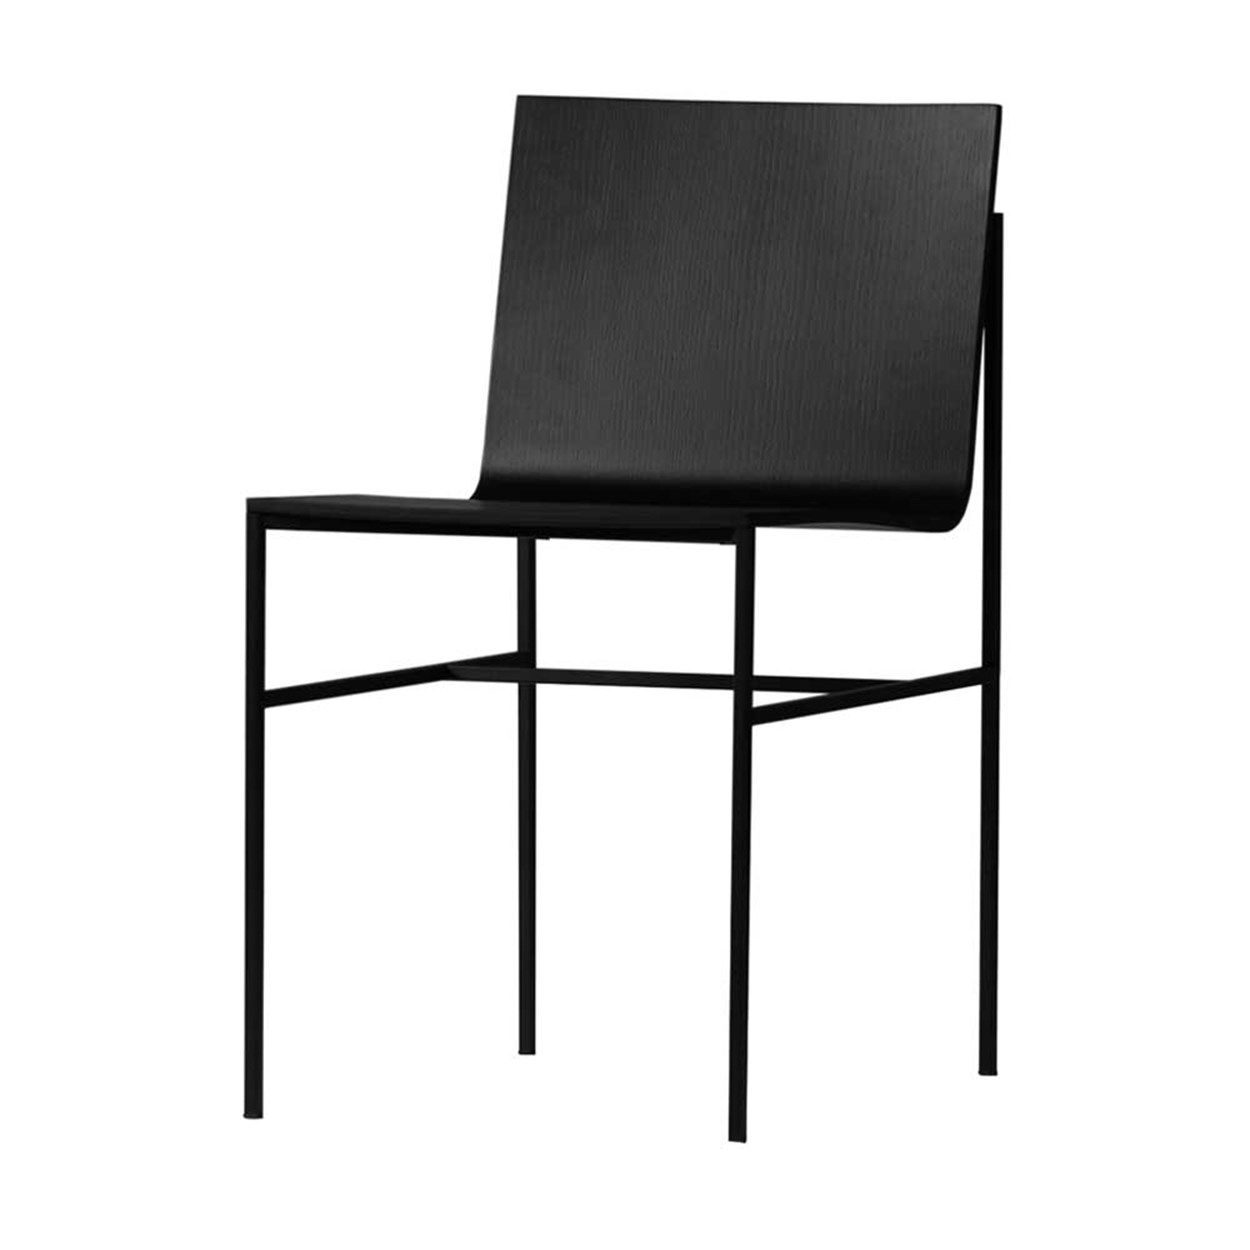 capdell-a-collection-chair-01.jpg